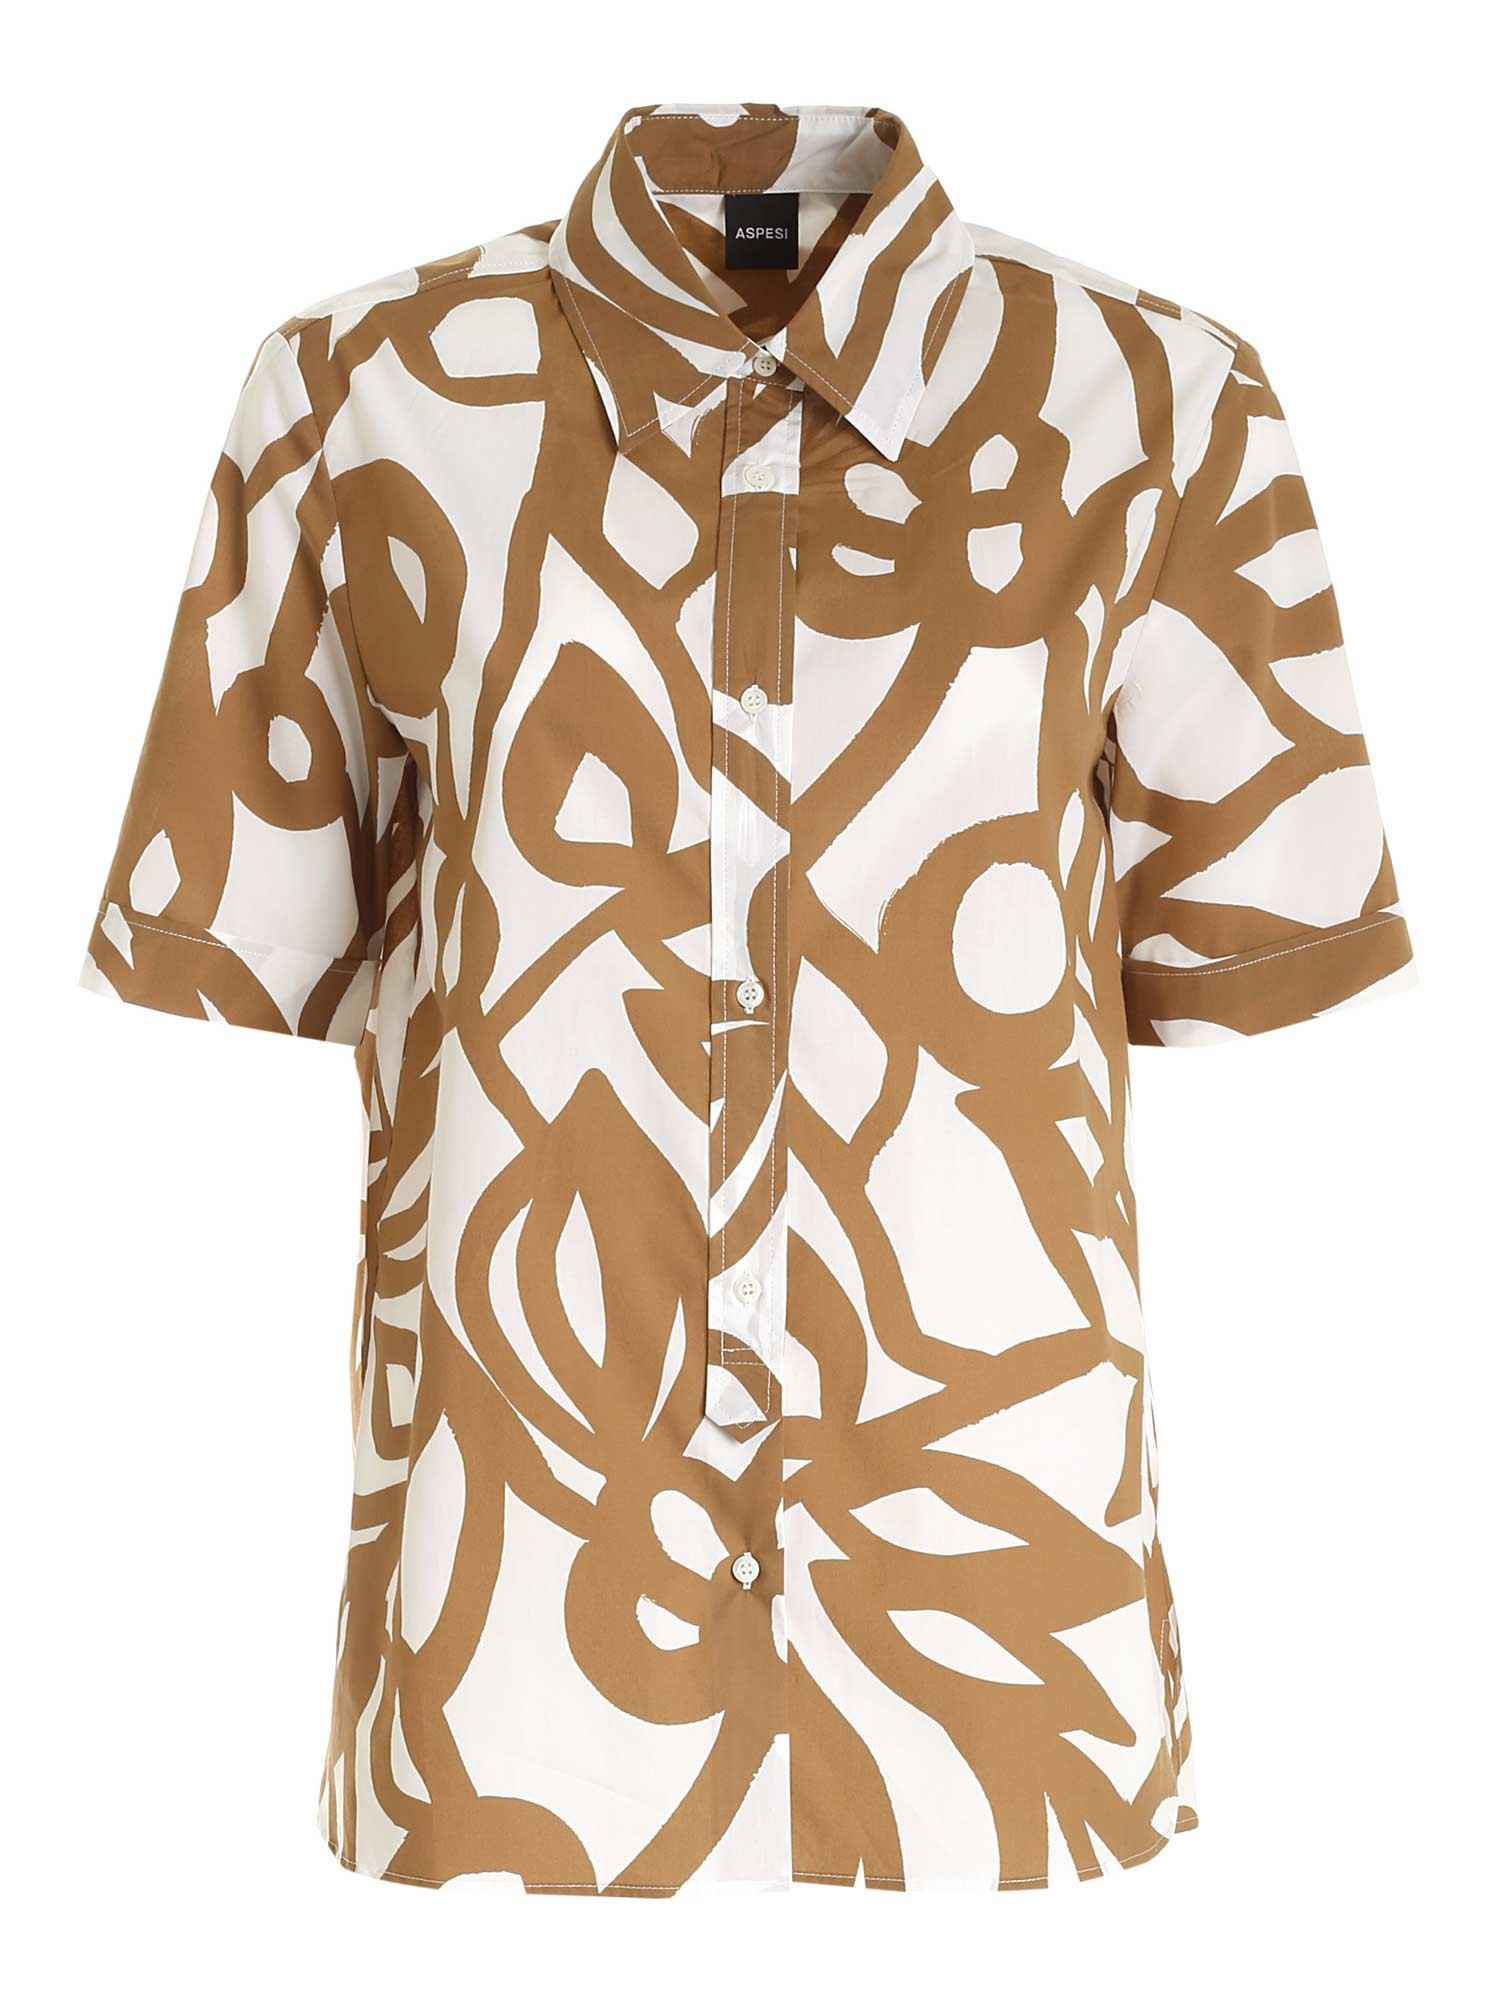 Aspesi Cottons SHORT SLEEVES SHIRT IN BEIGE AND BROWN